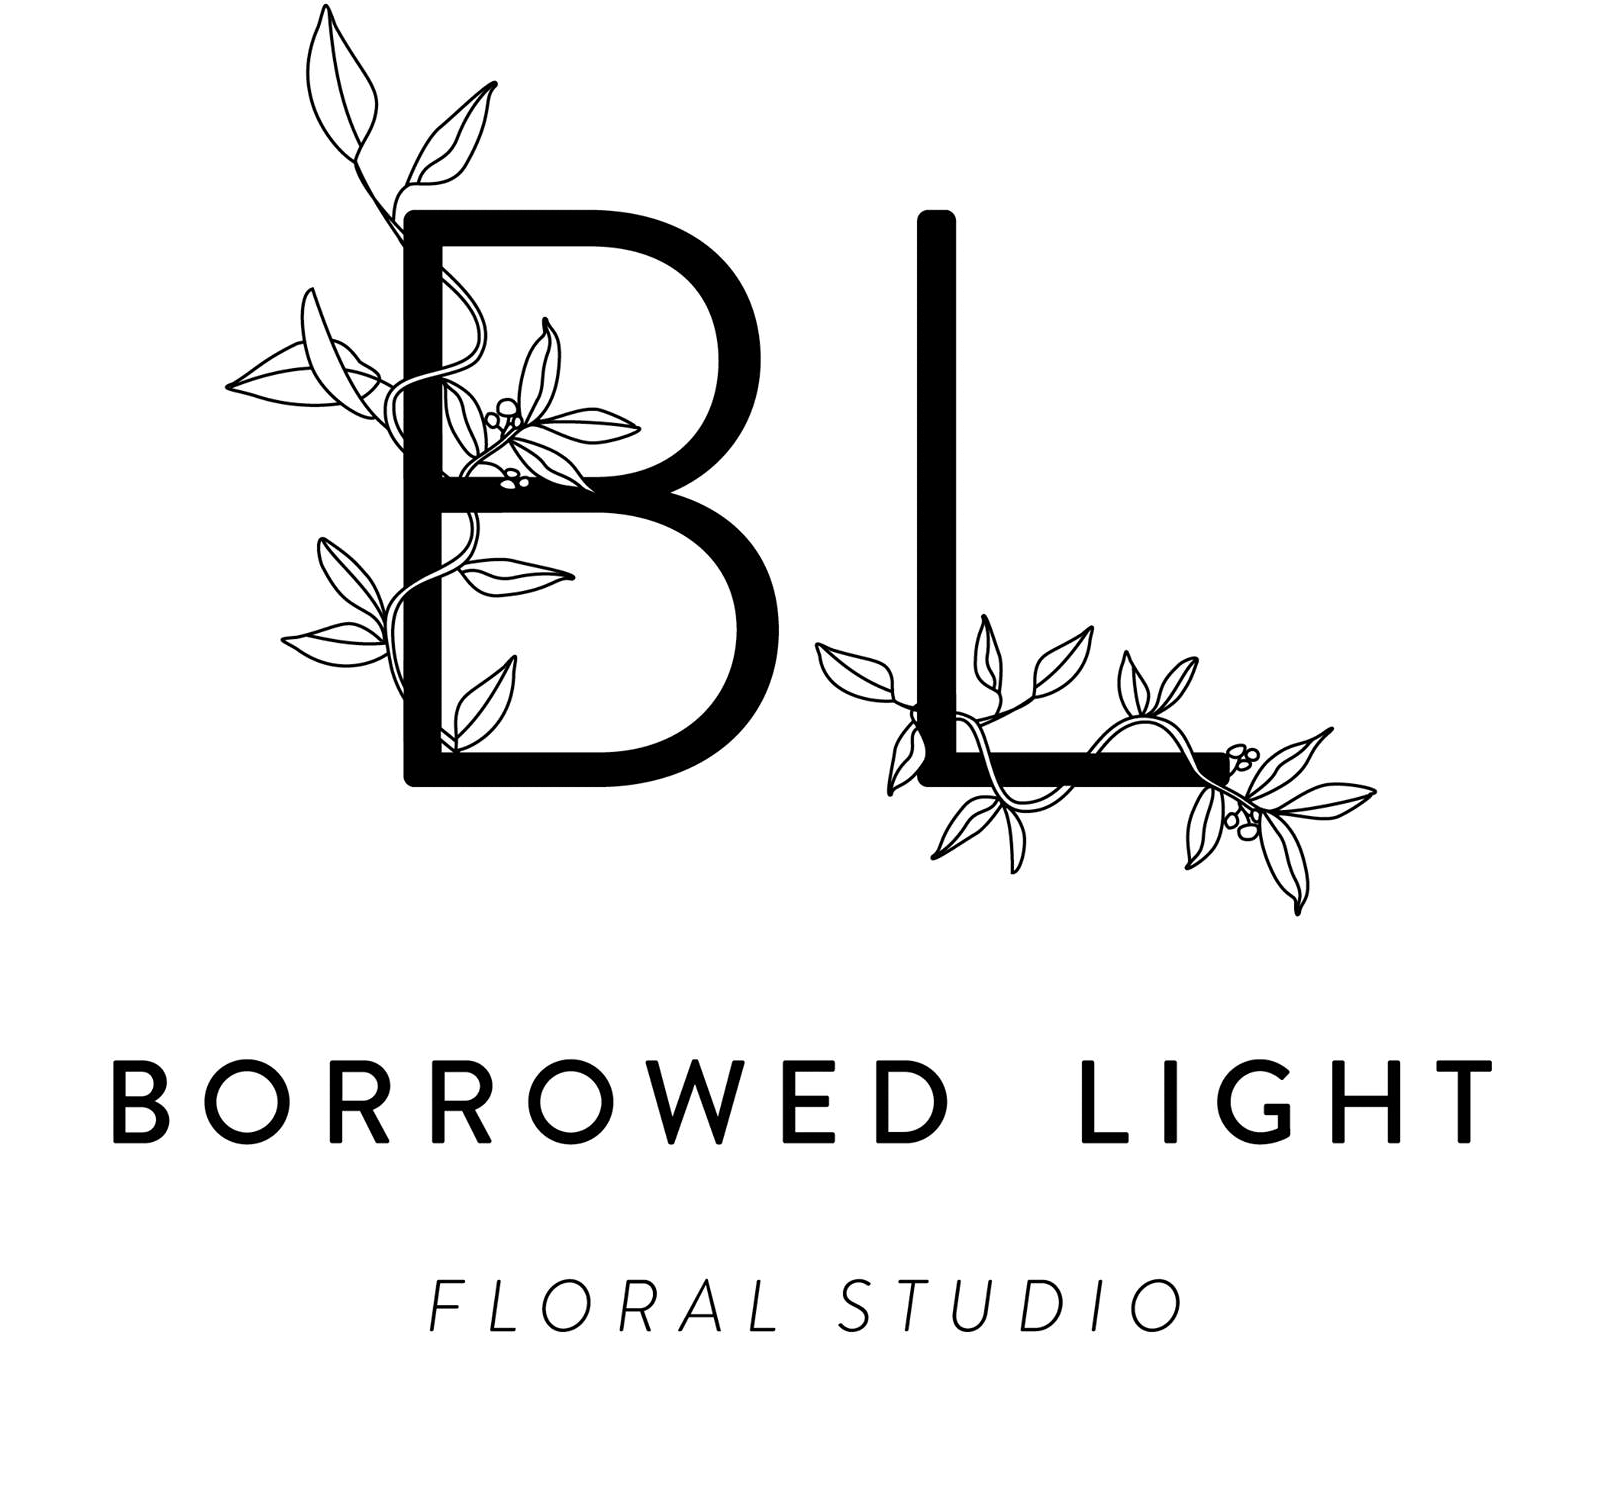 Borrowed Light logo. Initials with leaf design